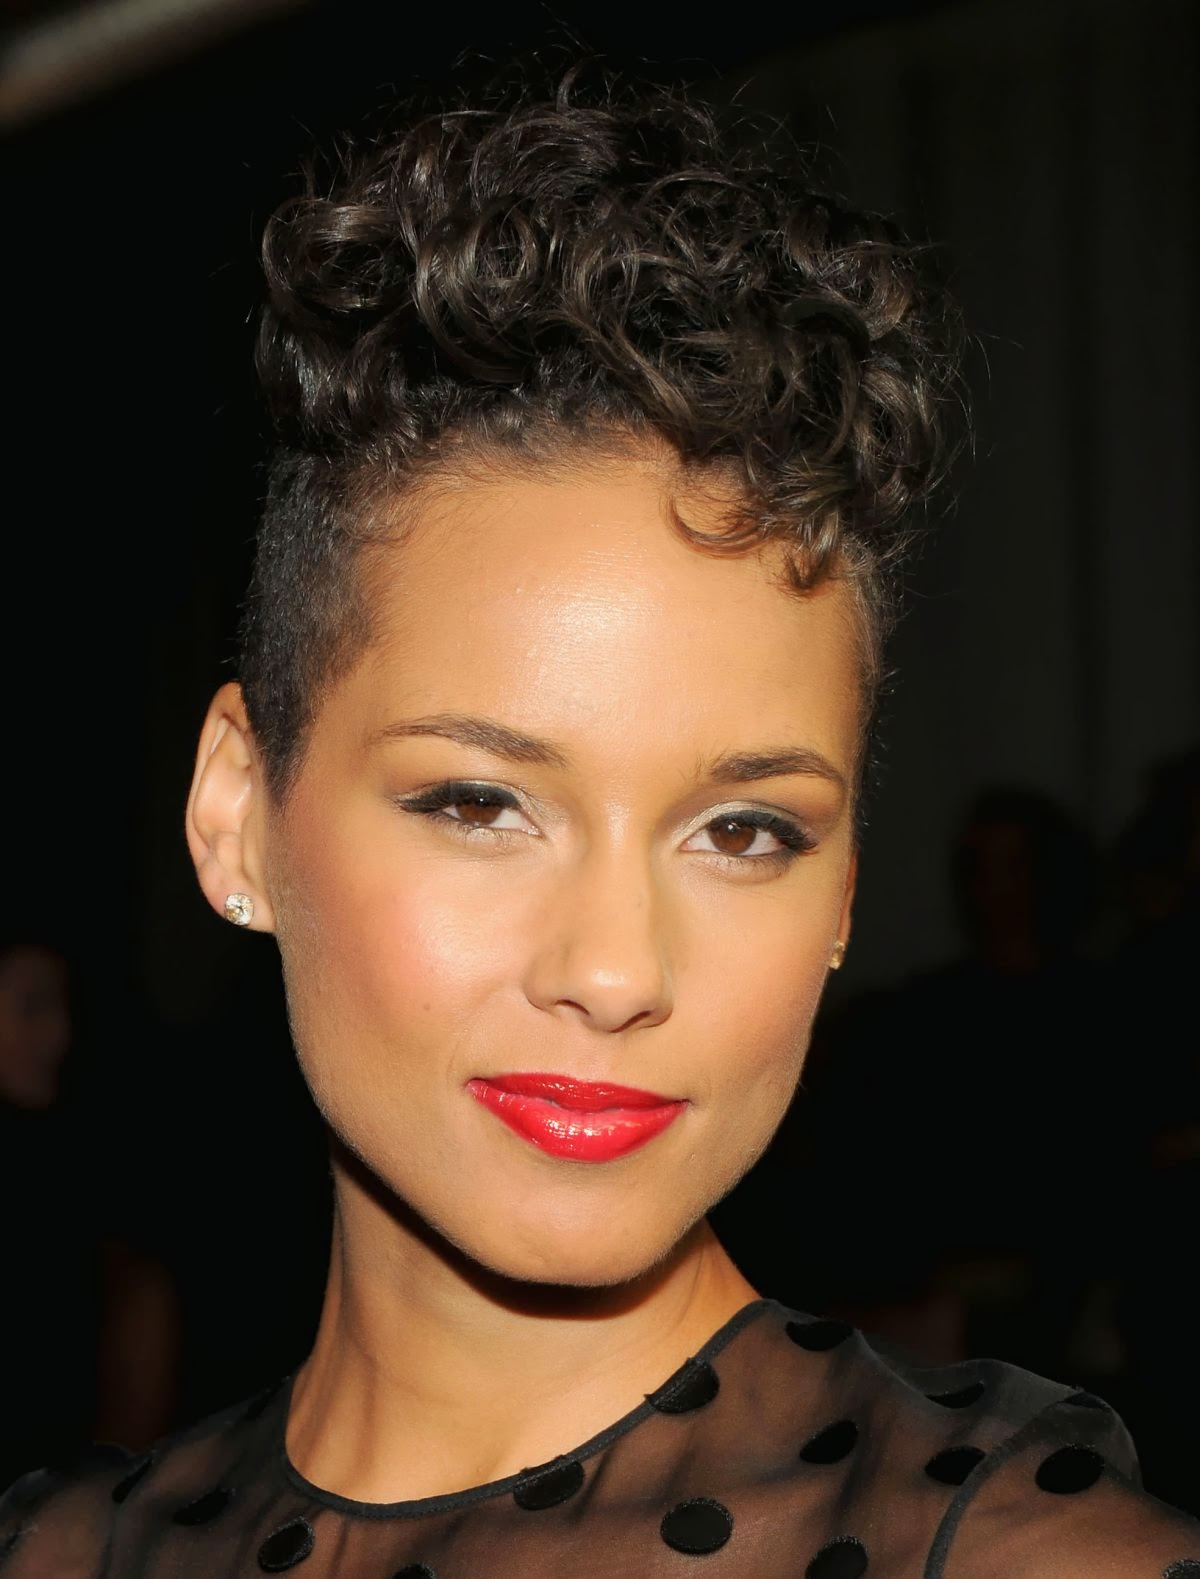 Astonishing Alicia Keys Hairstyles 2014 Hairstyles For Men Maxibearus